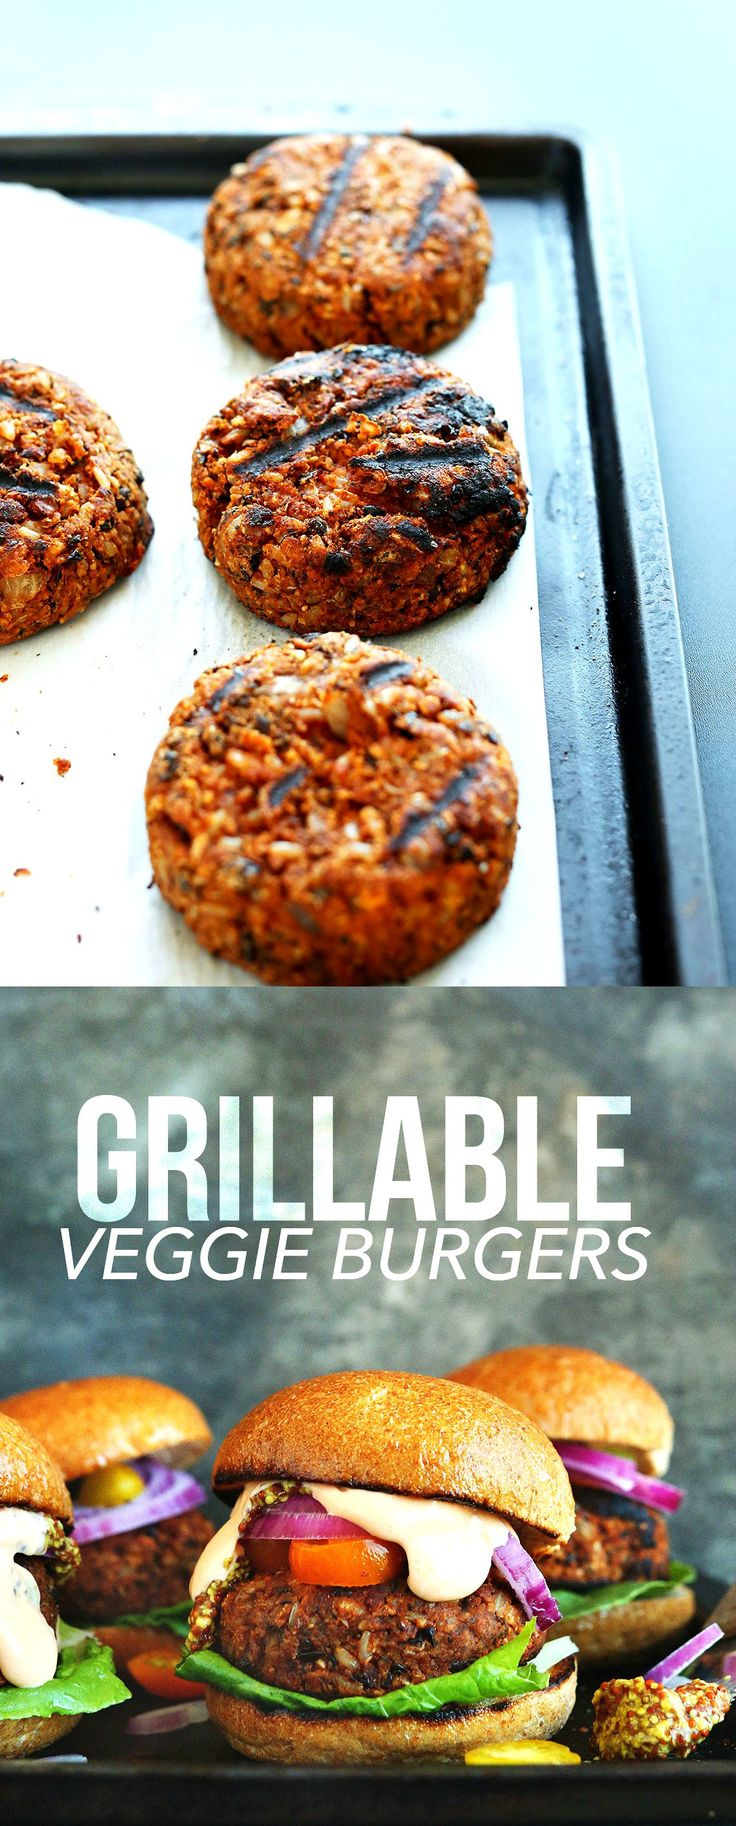 AMAZING Grillable Veggie Burgers with fluffy brown rice, black beans, walnuts and spices (Vegan Bbq)